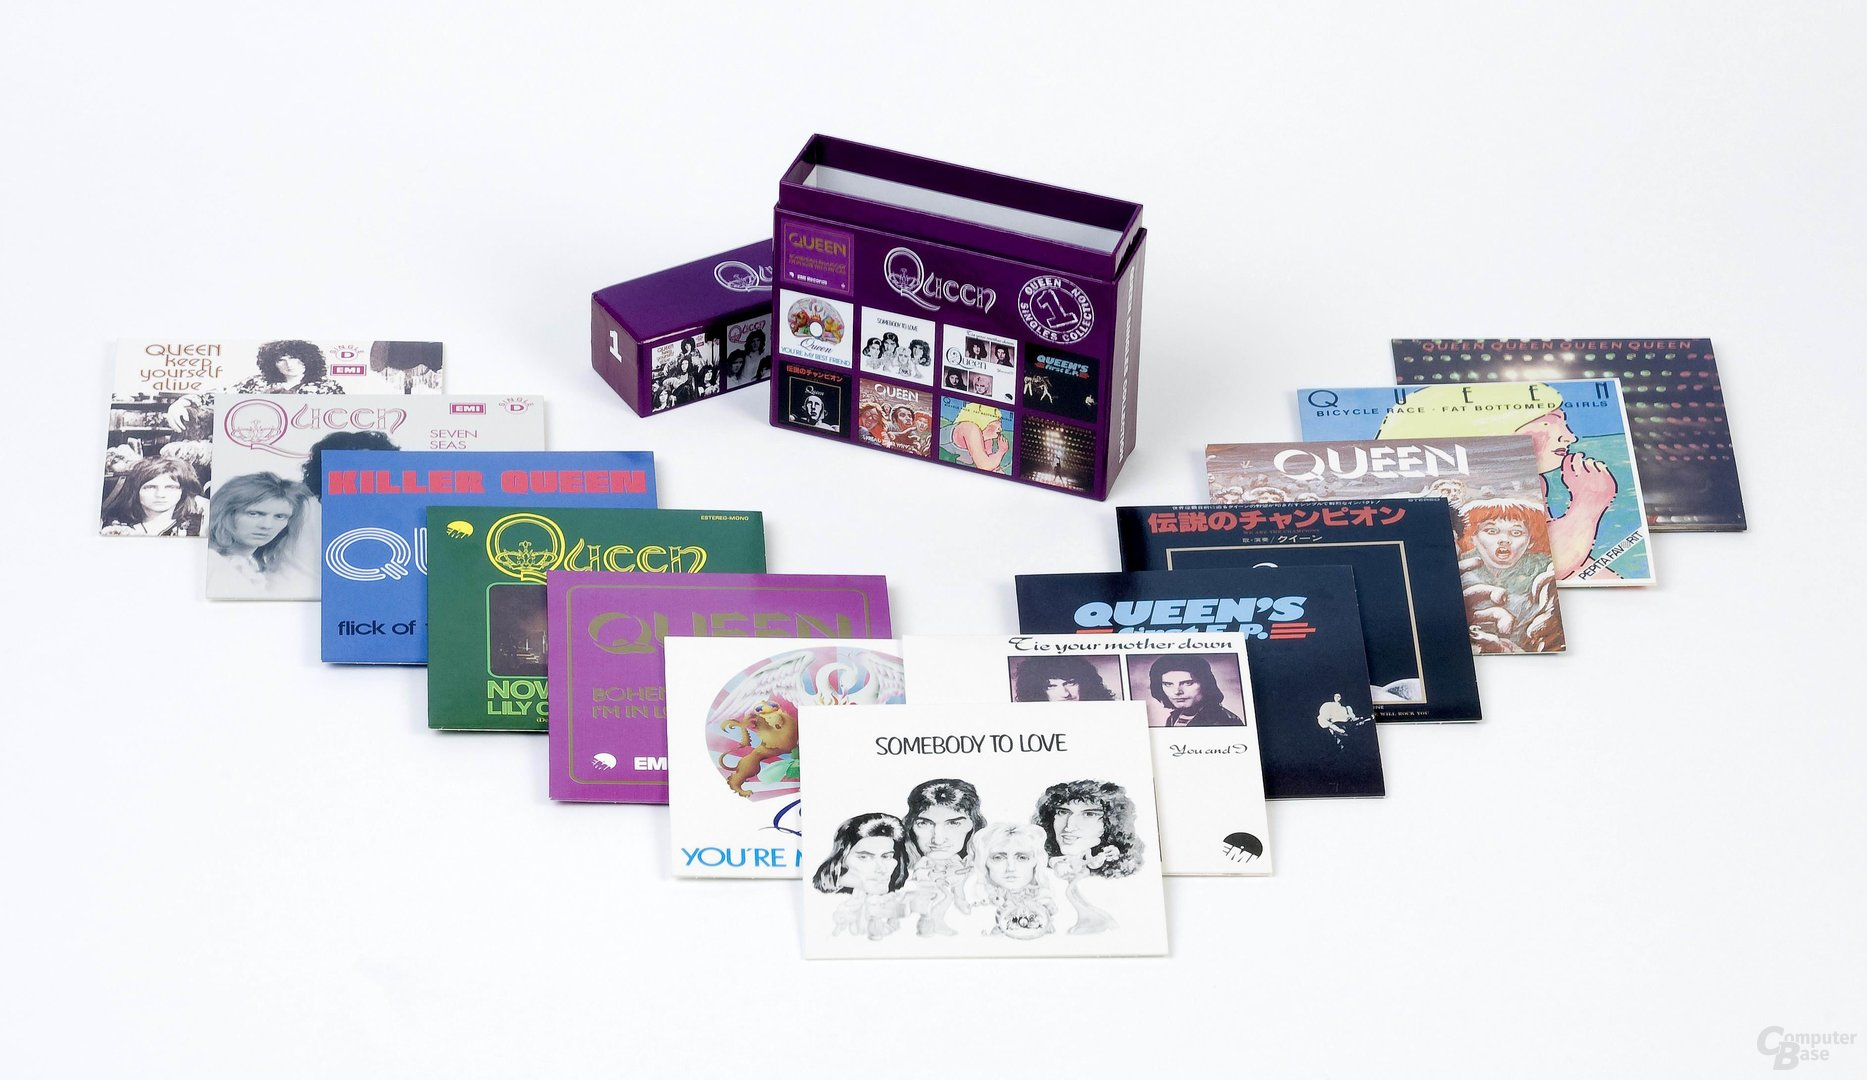 Queen Single Collection Vol. 1